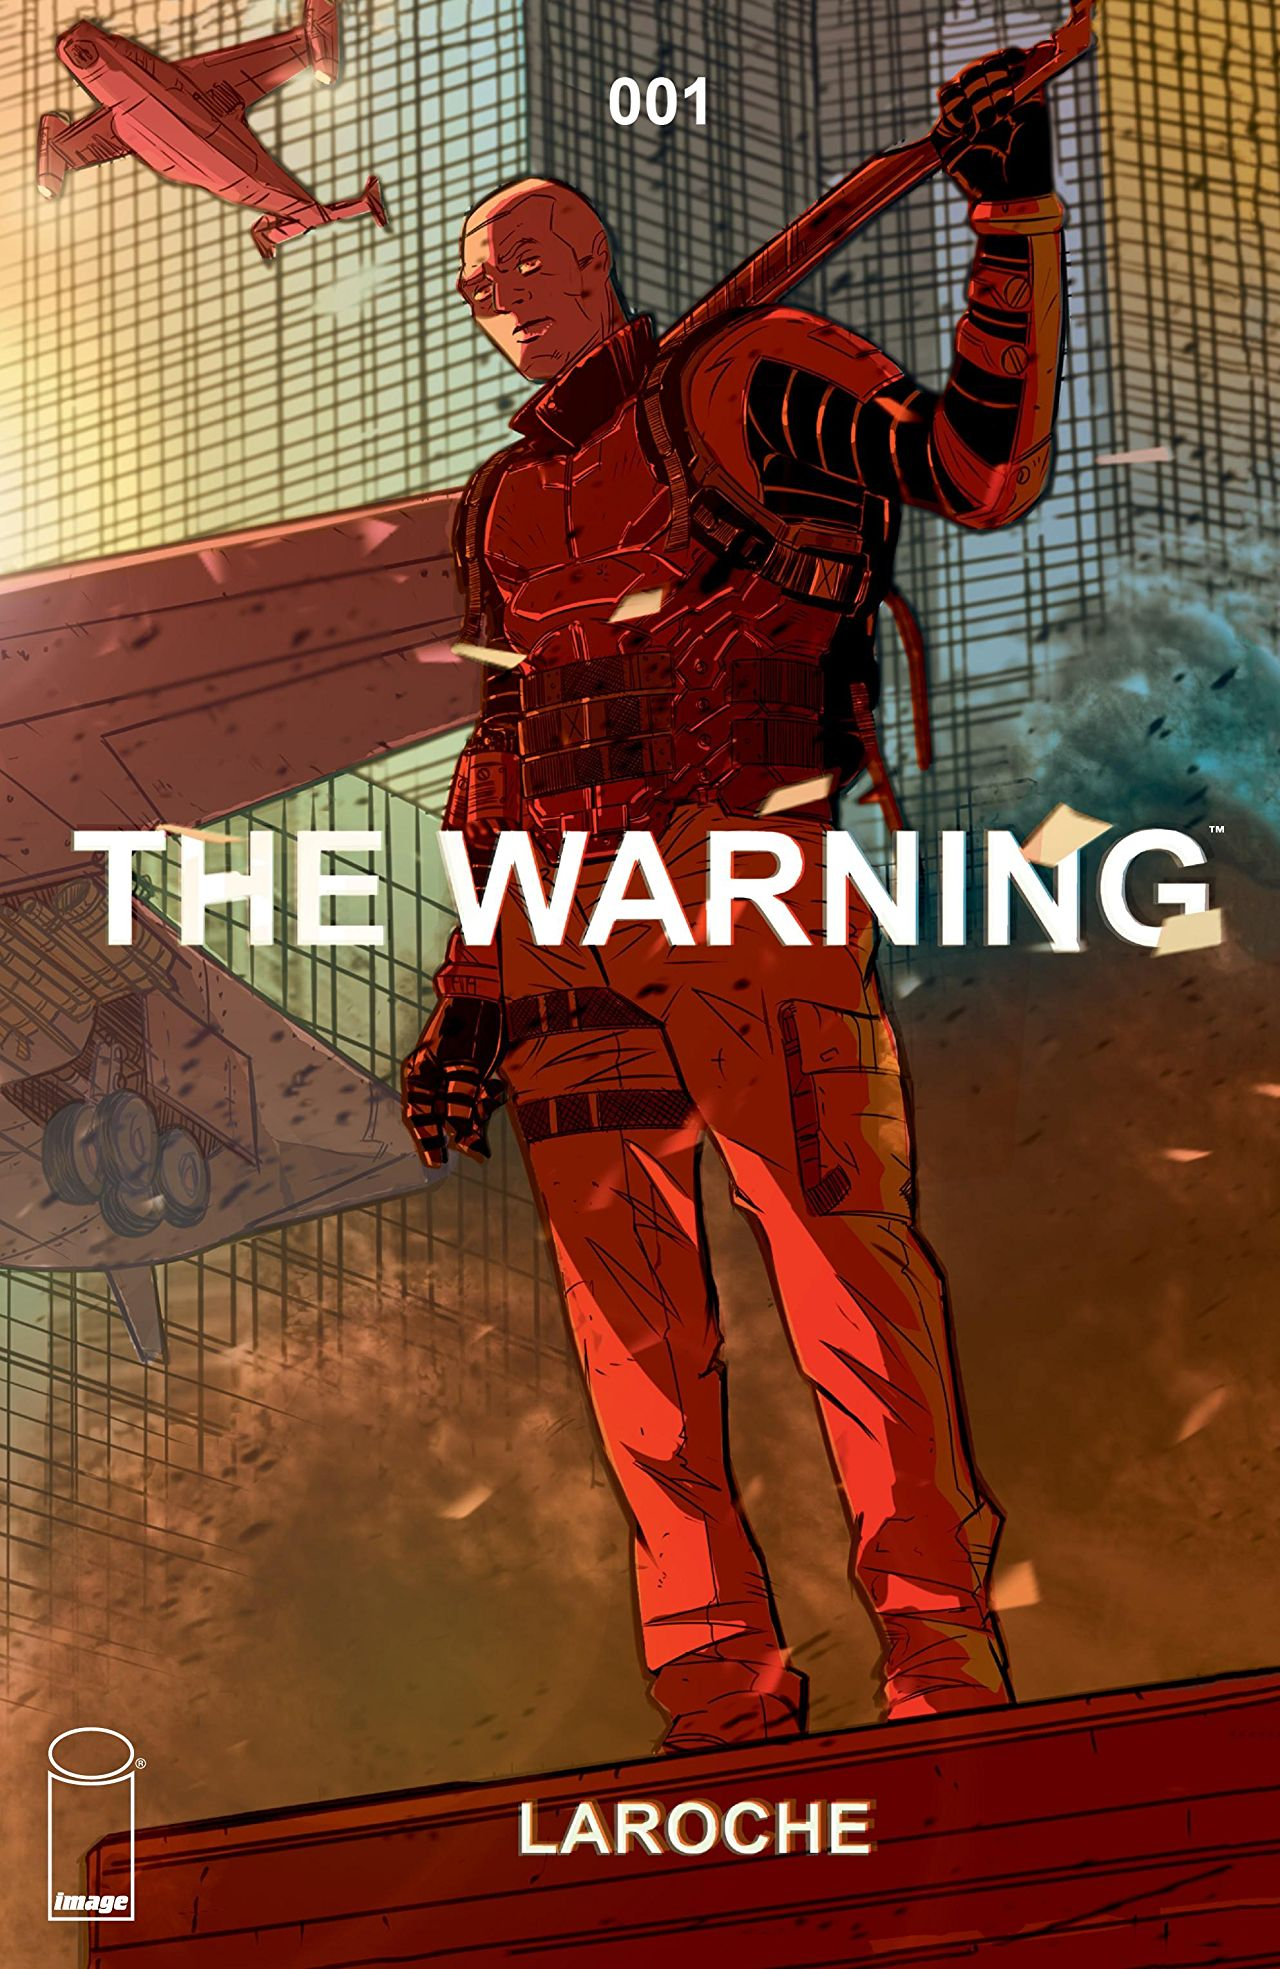 The Warning #1 review: Nothing more than the sum of its parts